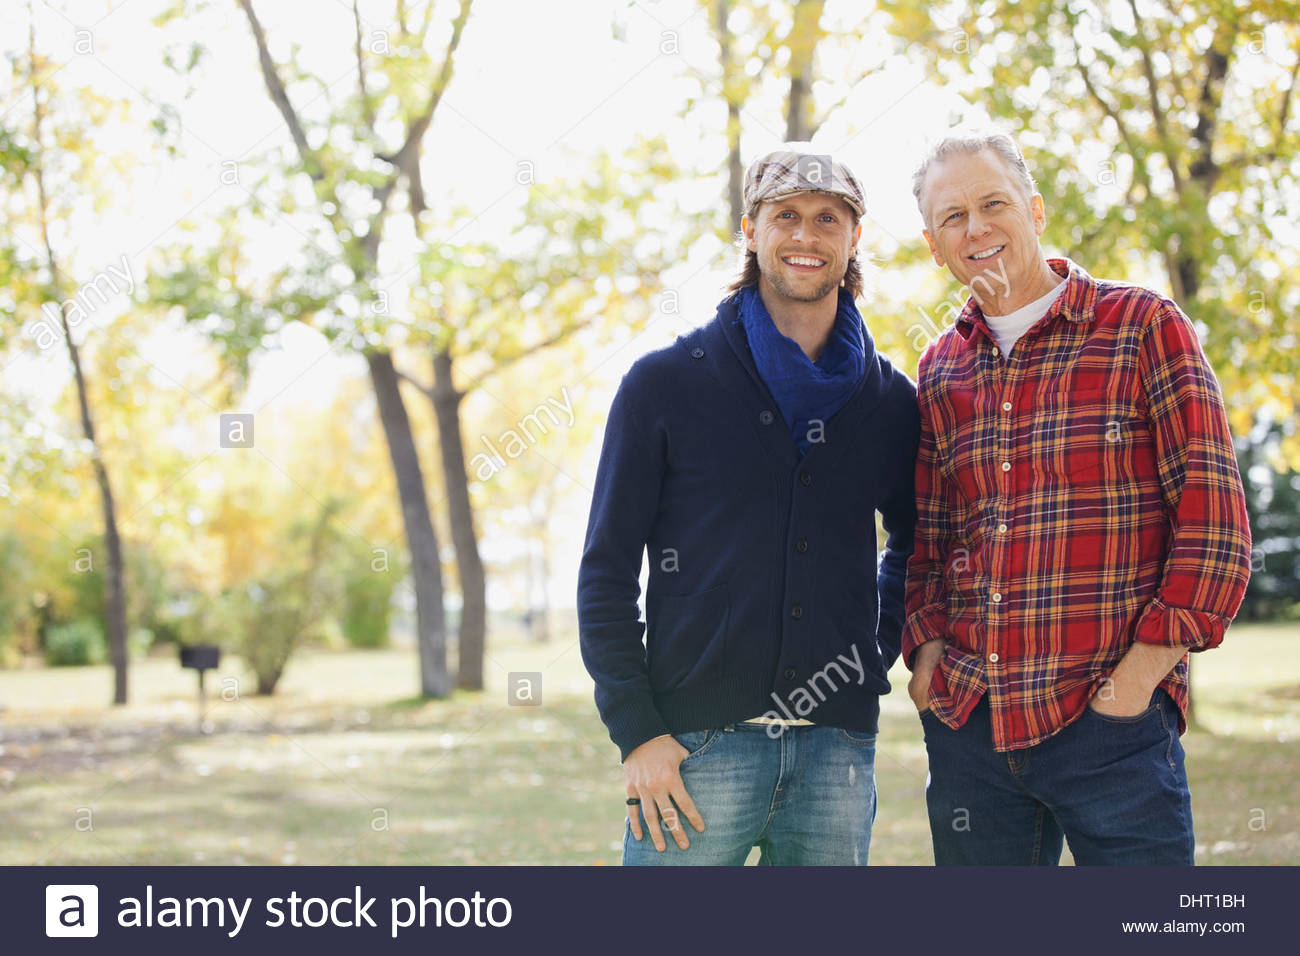 Portrait of happy mid adult man with father at park during autumn - Stock Image